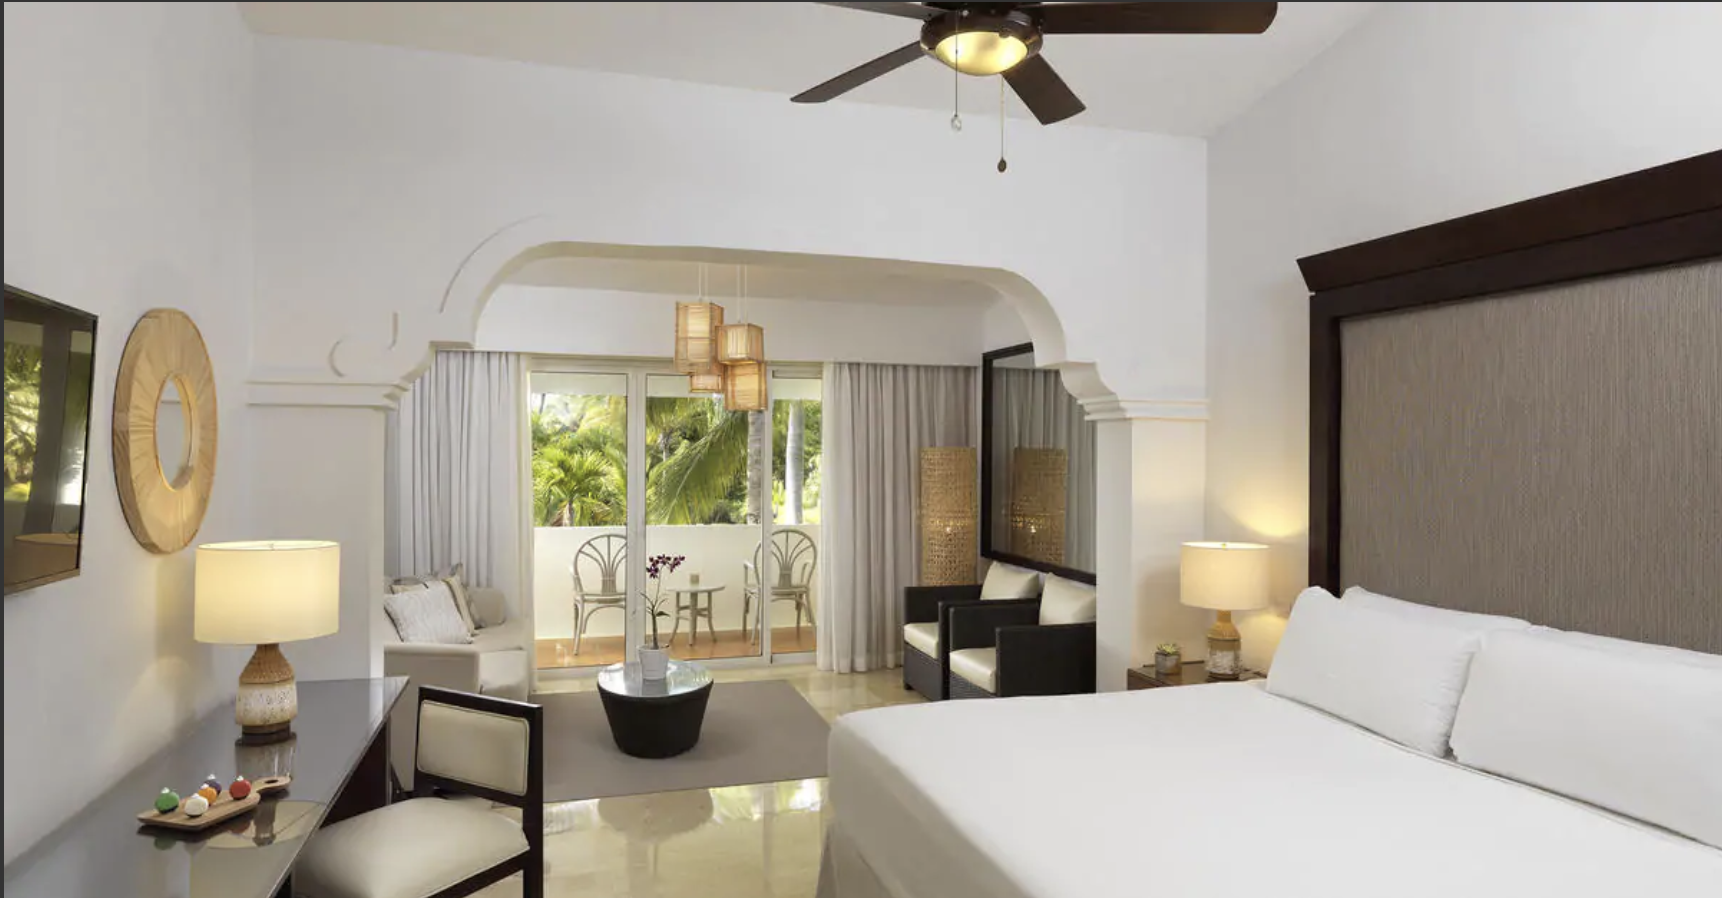 Junior Suite    TORONTO - PUNTA CANA 7 NIGHT PACKAGE    DOUBLE OCCUPANCY:   $1519    CAD PER PERSON   CHILDREN AGES 2-12:   $1199    CAD (WHEN SHARING ROOM WITH TWO ADULTS)    UK - PUNTA CANA   RATES TBD   BRAZIL - PUNTA CANA   RATES TBD   USA - PUNTA CANA   RATES TBD